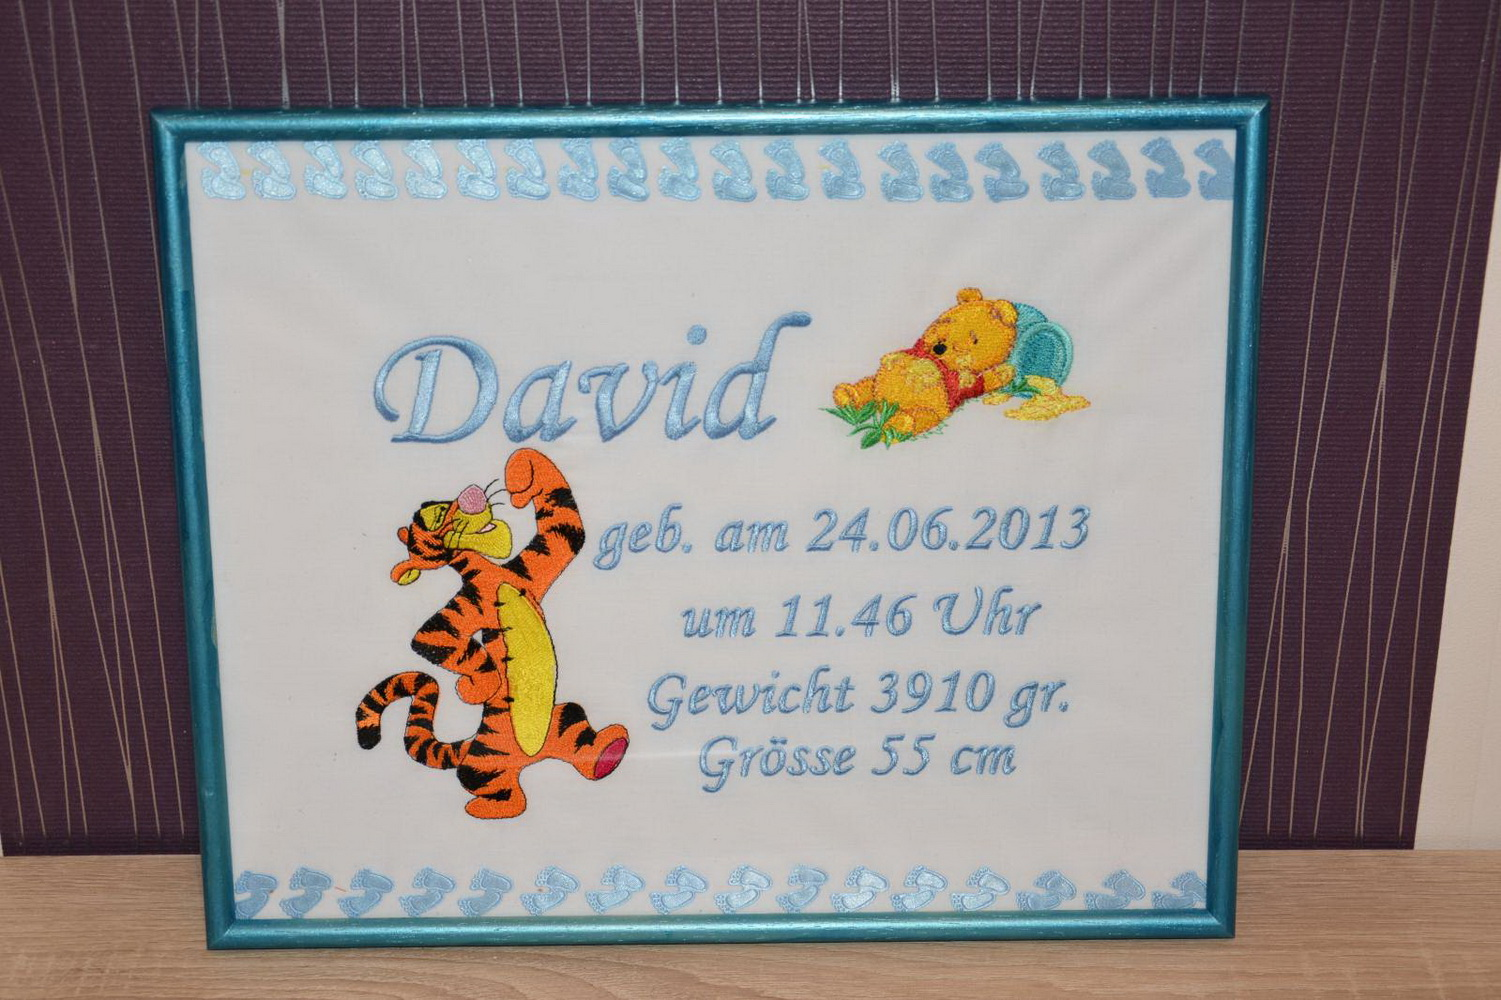 Embroidered Winnie Pooh and brave Tigger on birthday frame